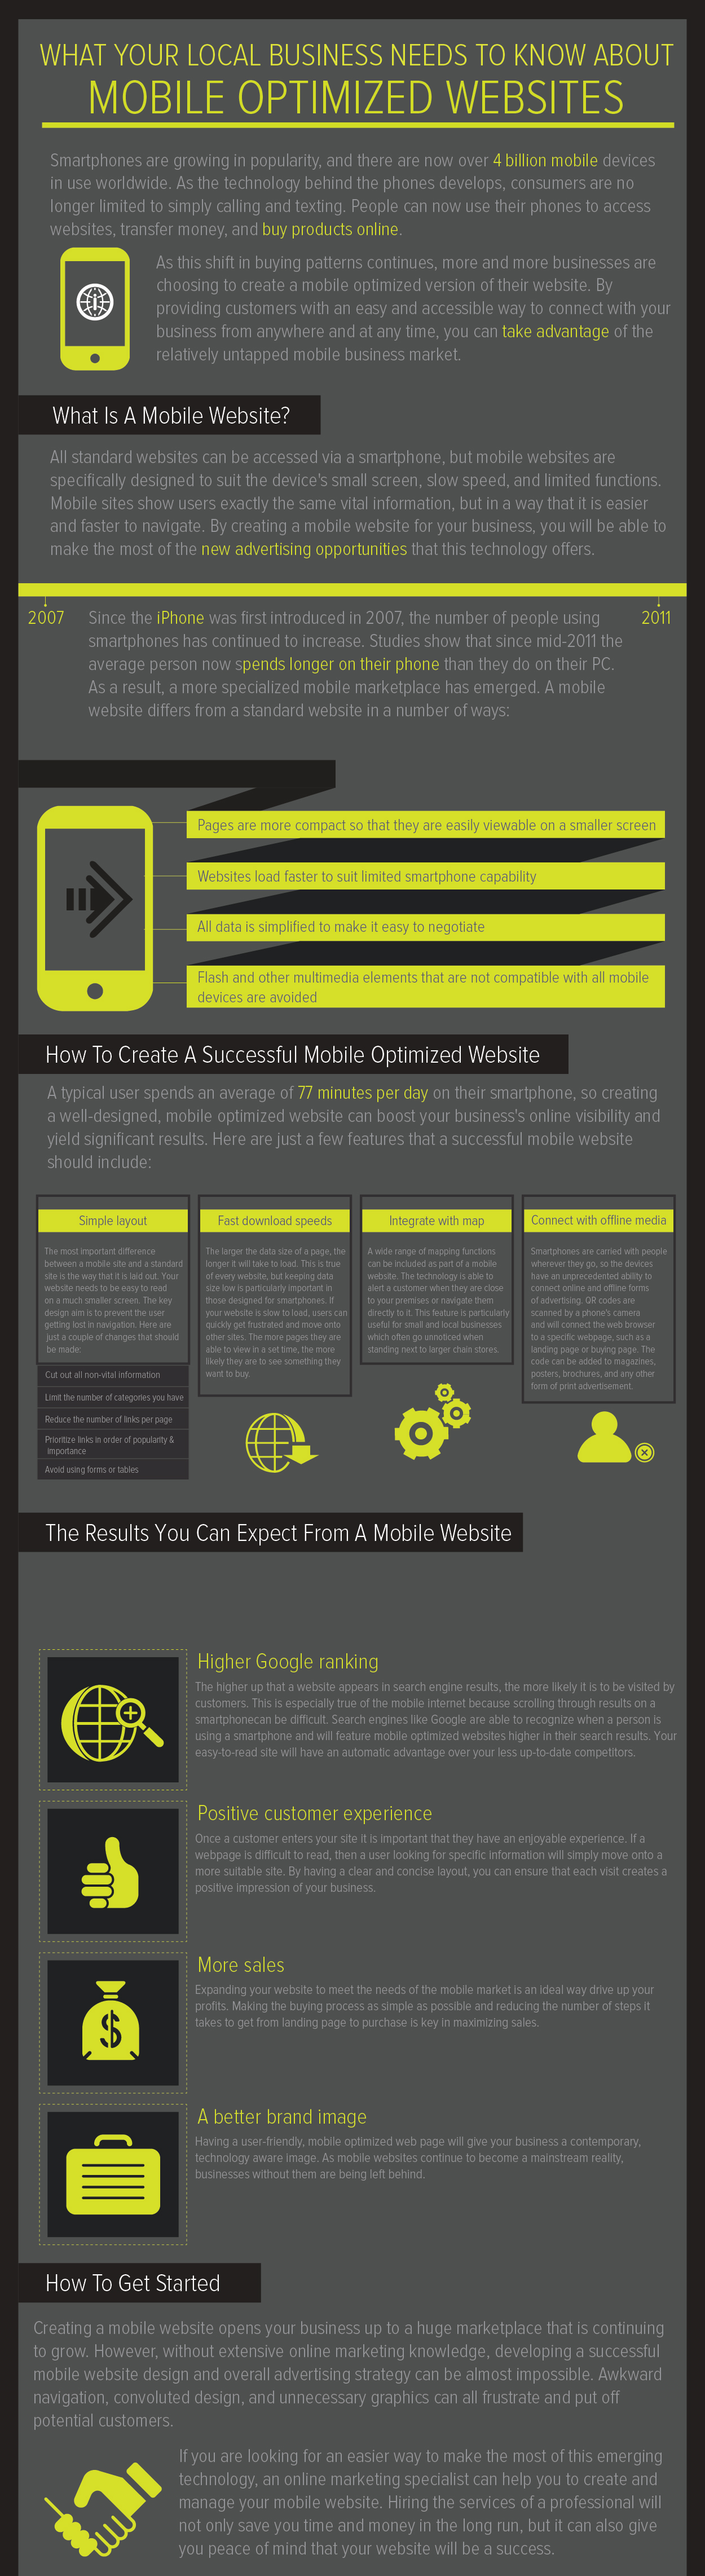 Mobile Optimized Websites